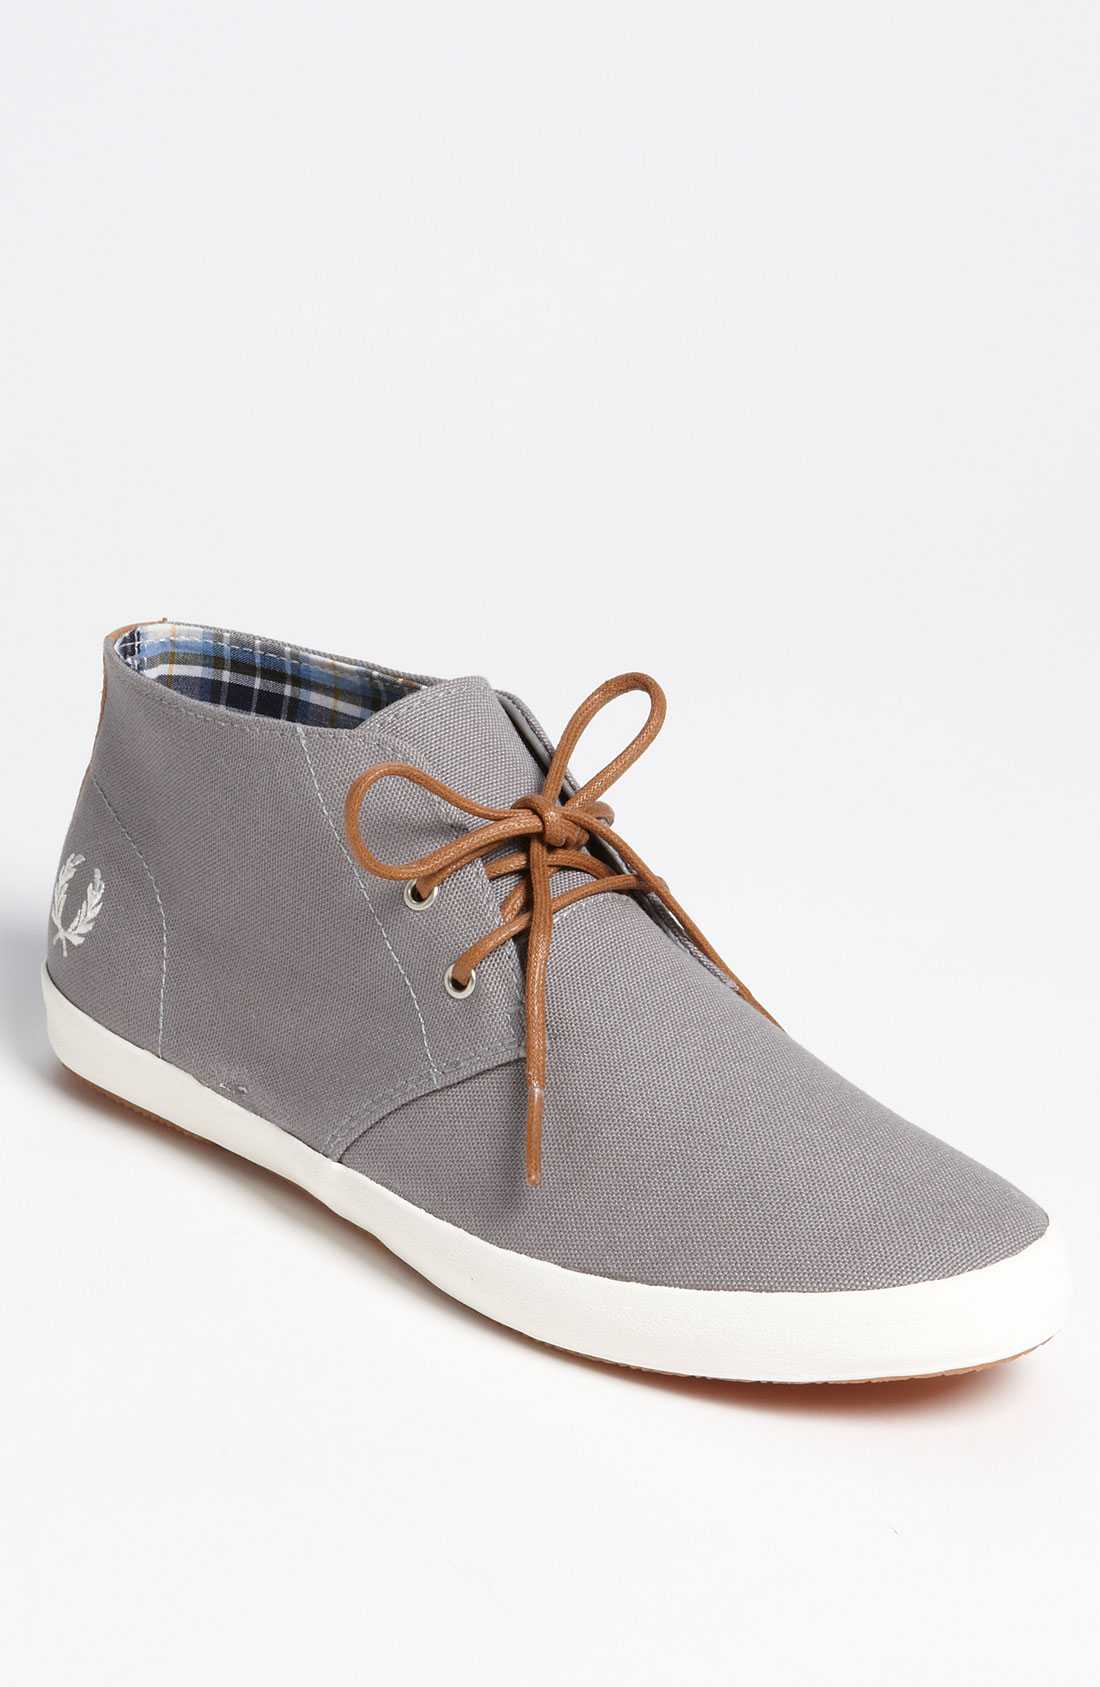 fred perry byron mid sneaker in gray for men cloudburst. Black Bedroom Furniture Sets. Home Design Ideas